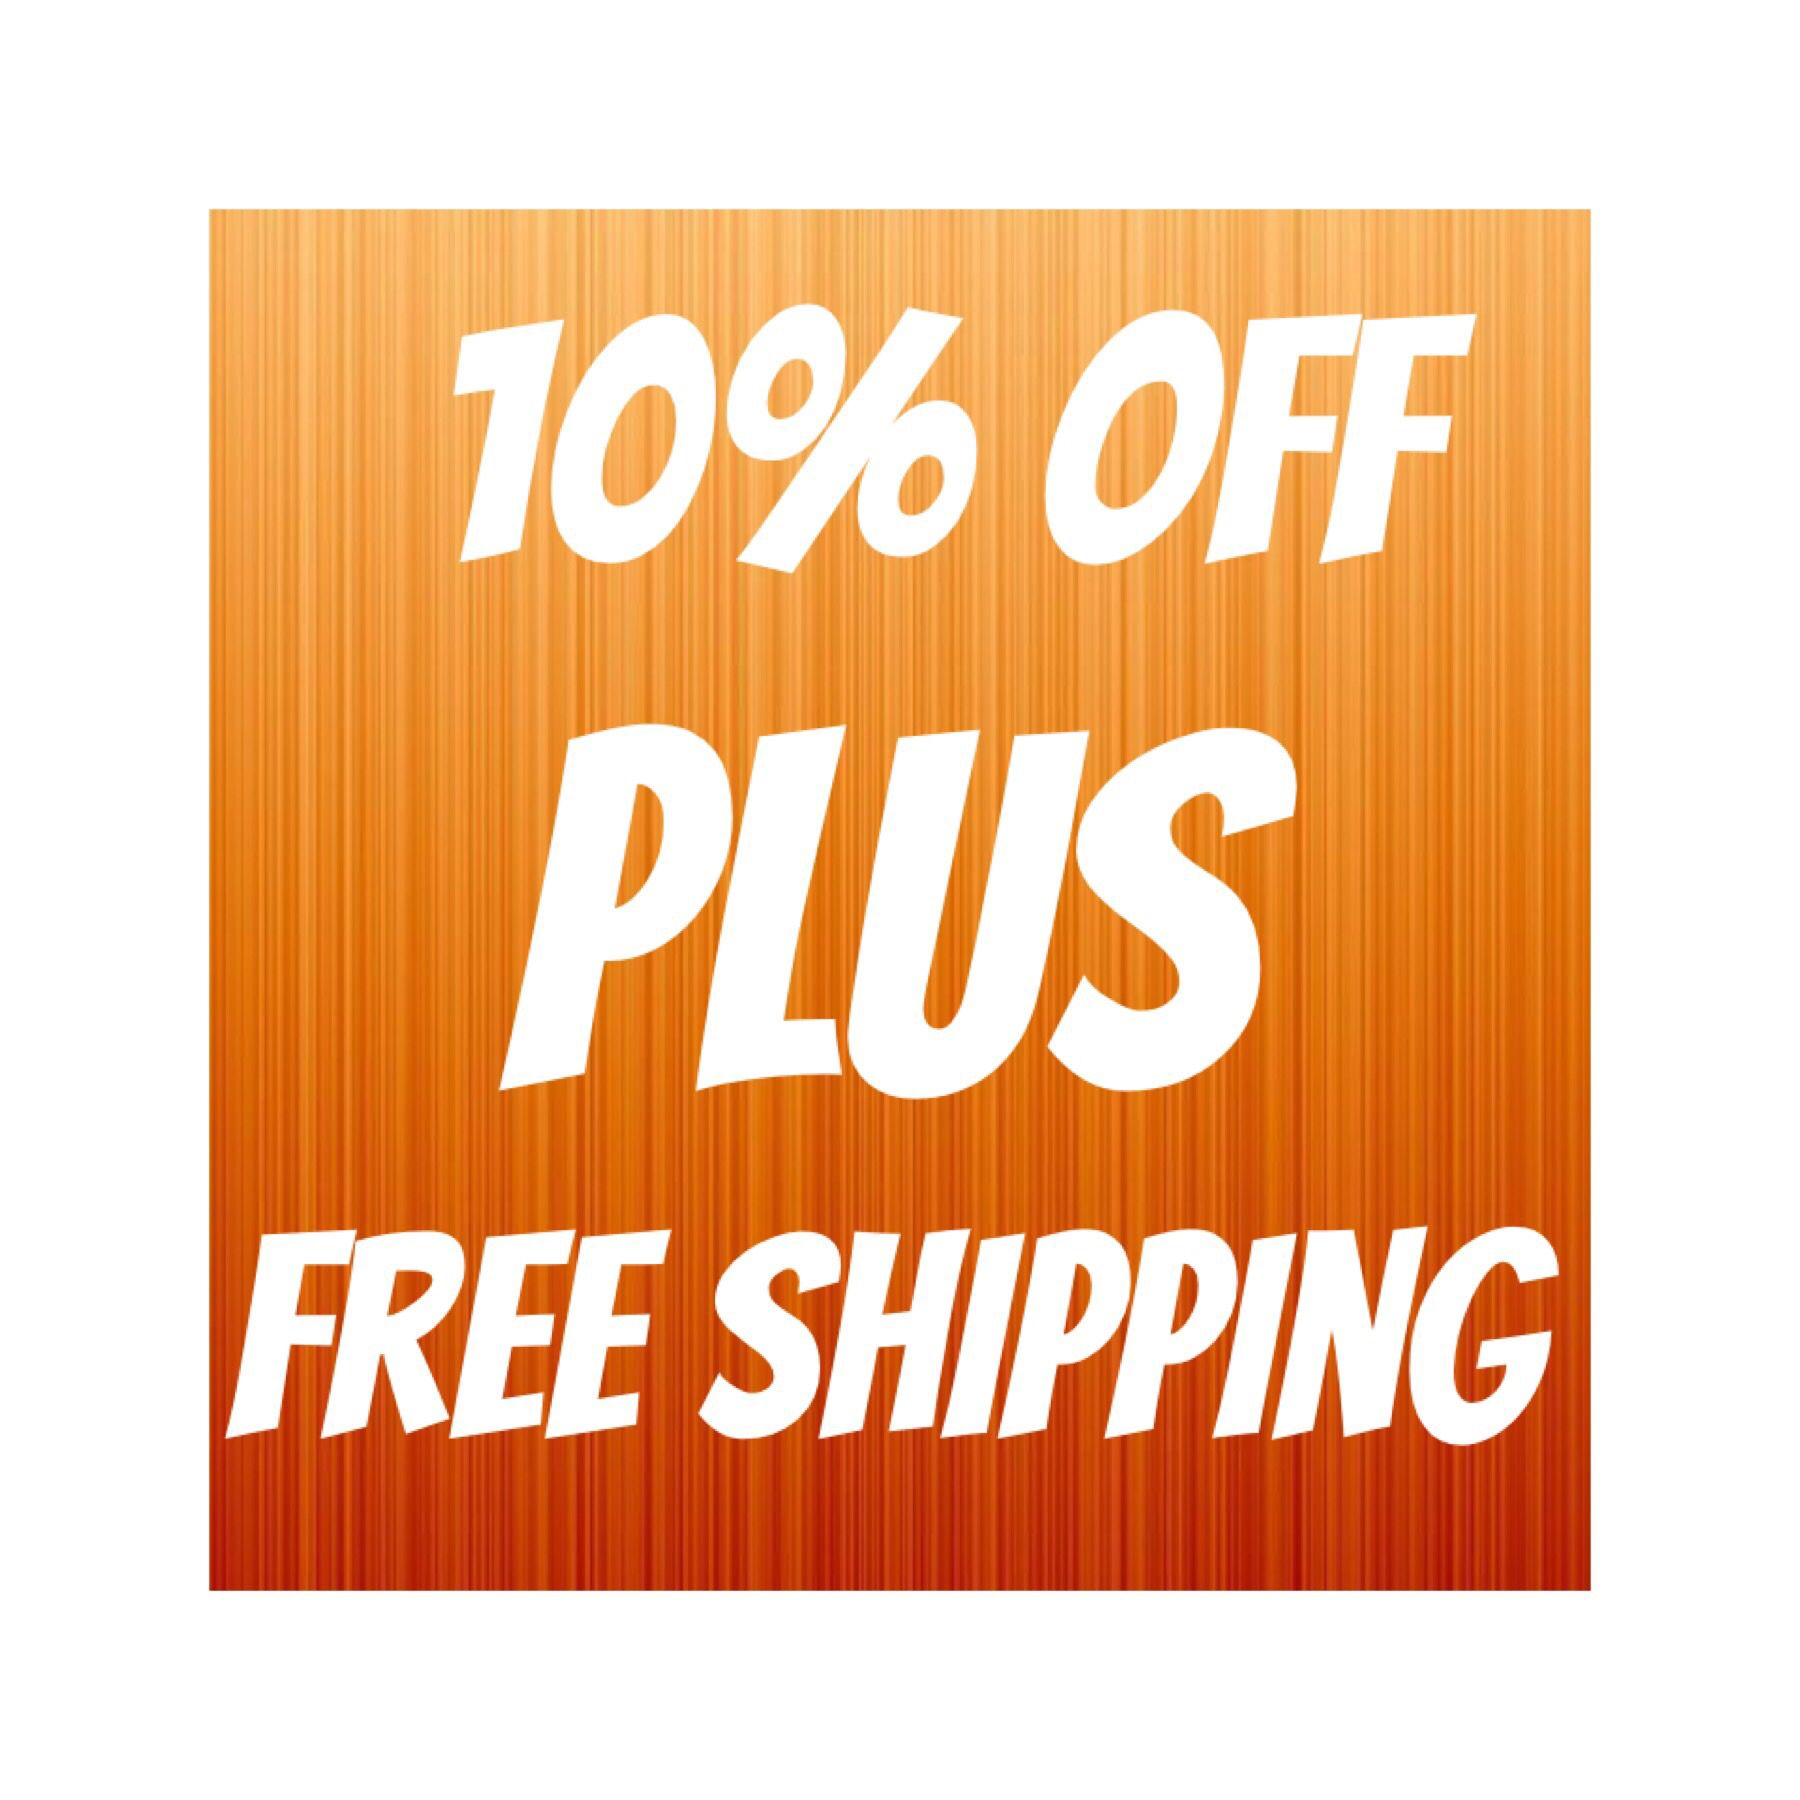 Only 2 More Days To Get 10 Off Plus Free Shipping For Follow My